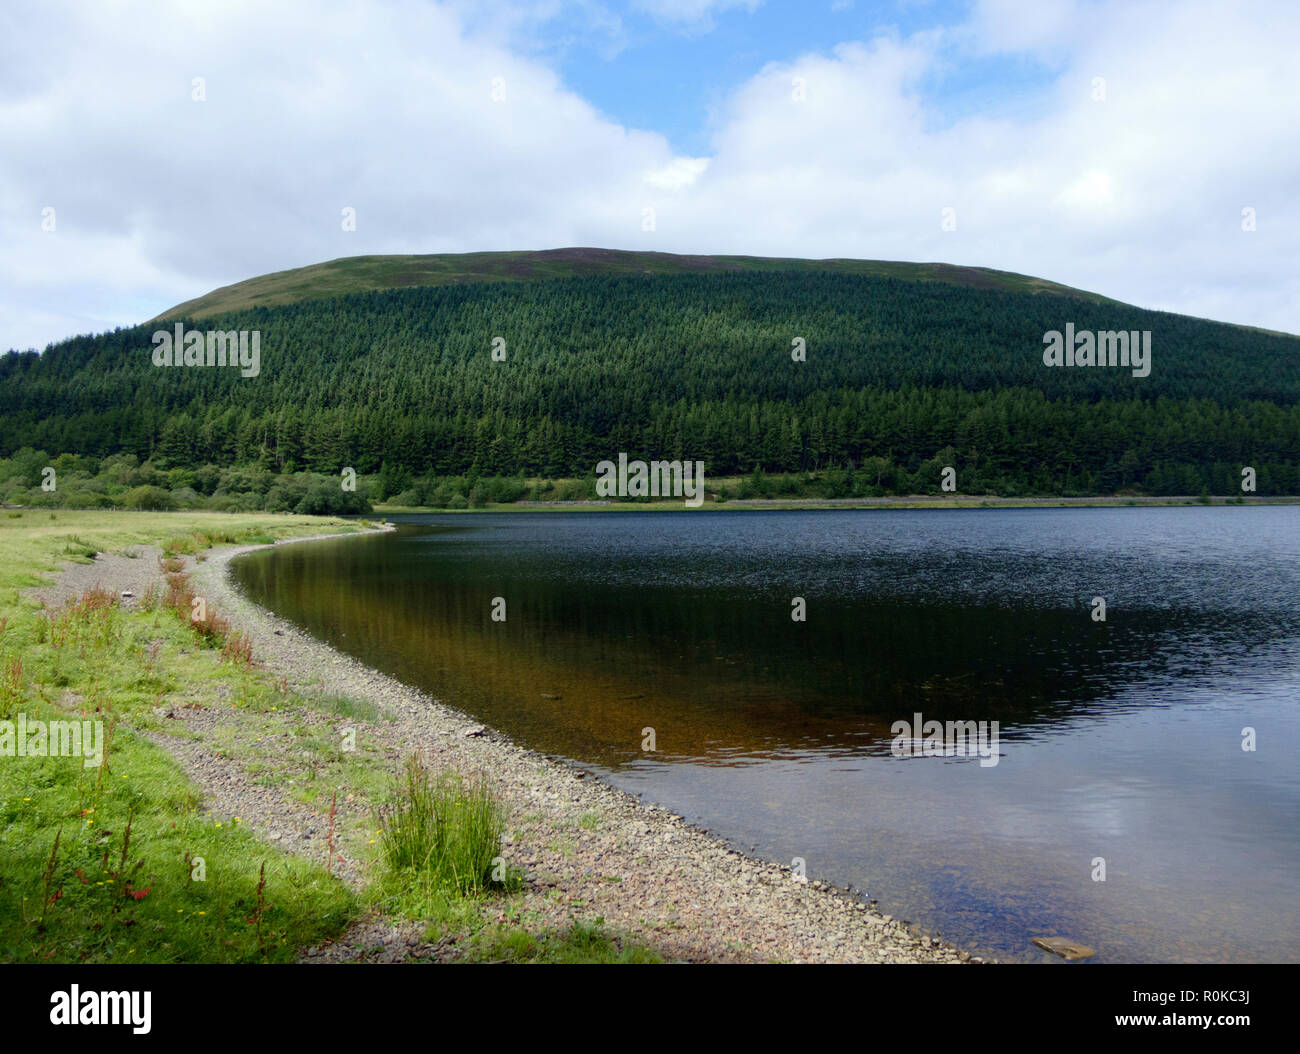 Loch of the Lowes & Oxcleuch Rig Hill and Long Bank Plantation, Southern Upland Hills, Upper Yarrow Valley, Borders County, Scotland, UK in August - Stock Image